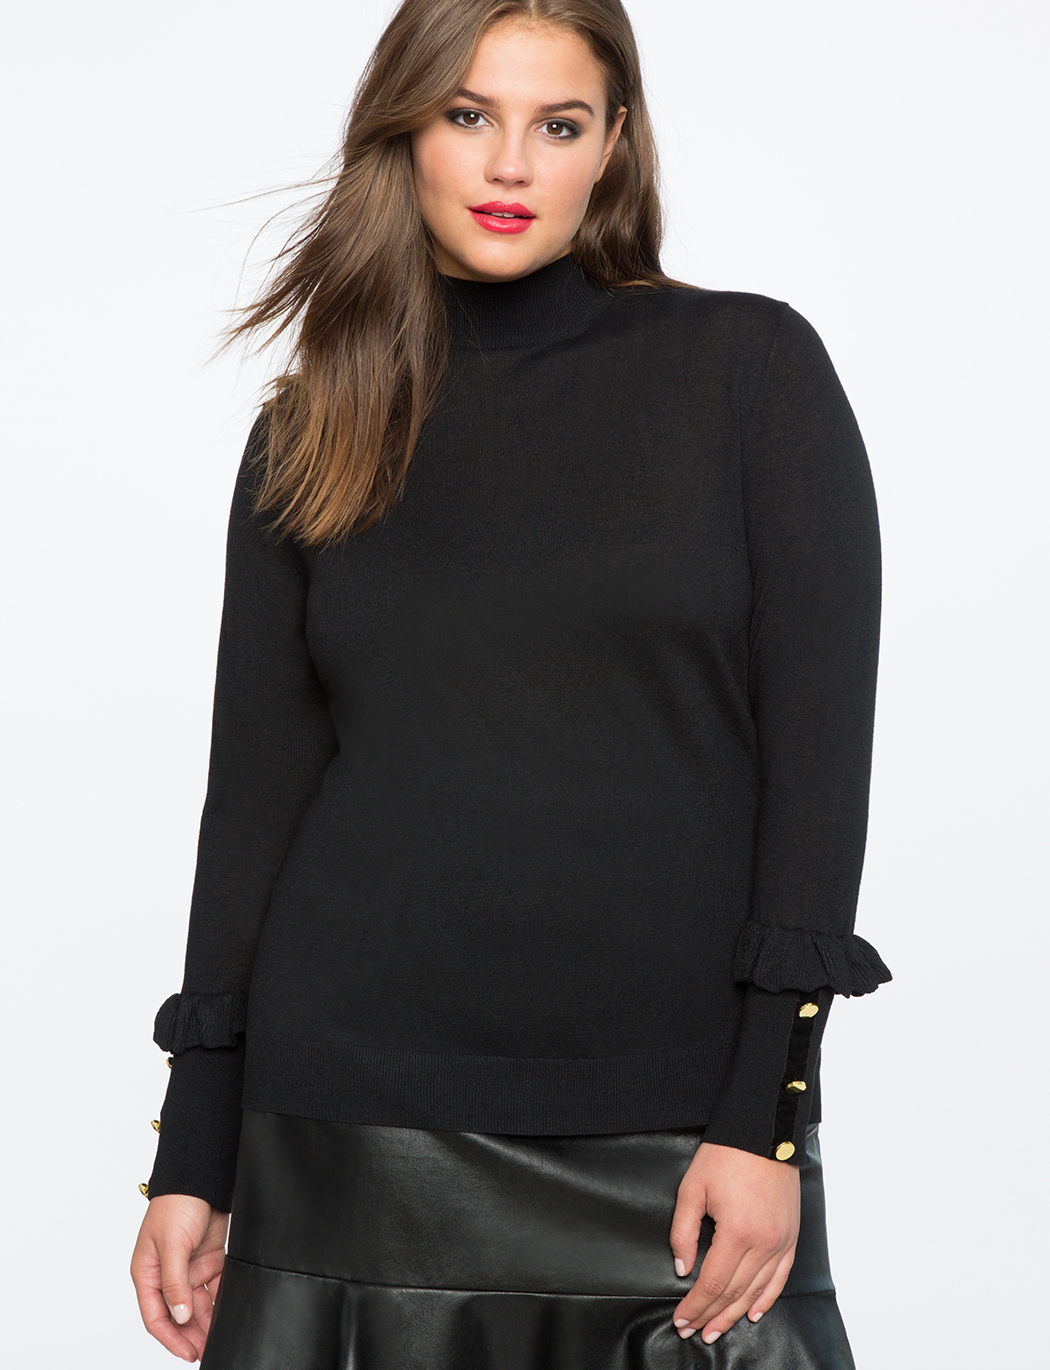 9931862242 Button Cuff Turtleneck Top | Women's Plus Size Tops | ELOQUII